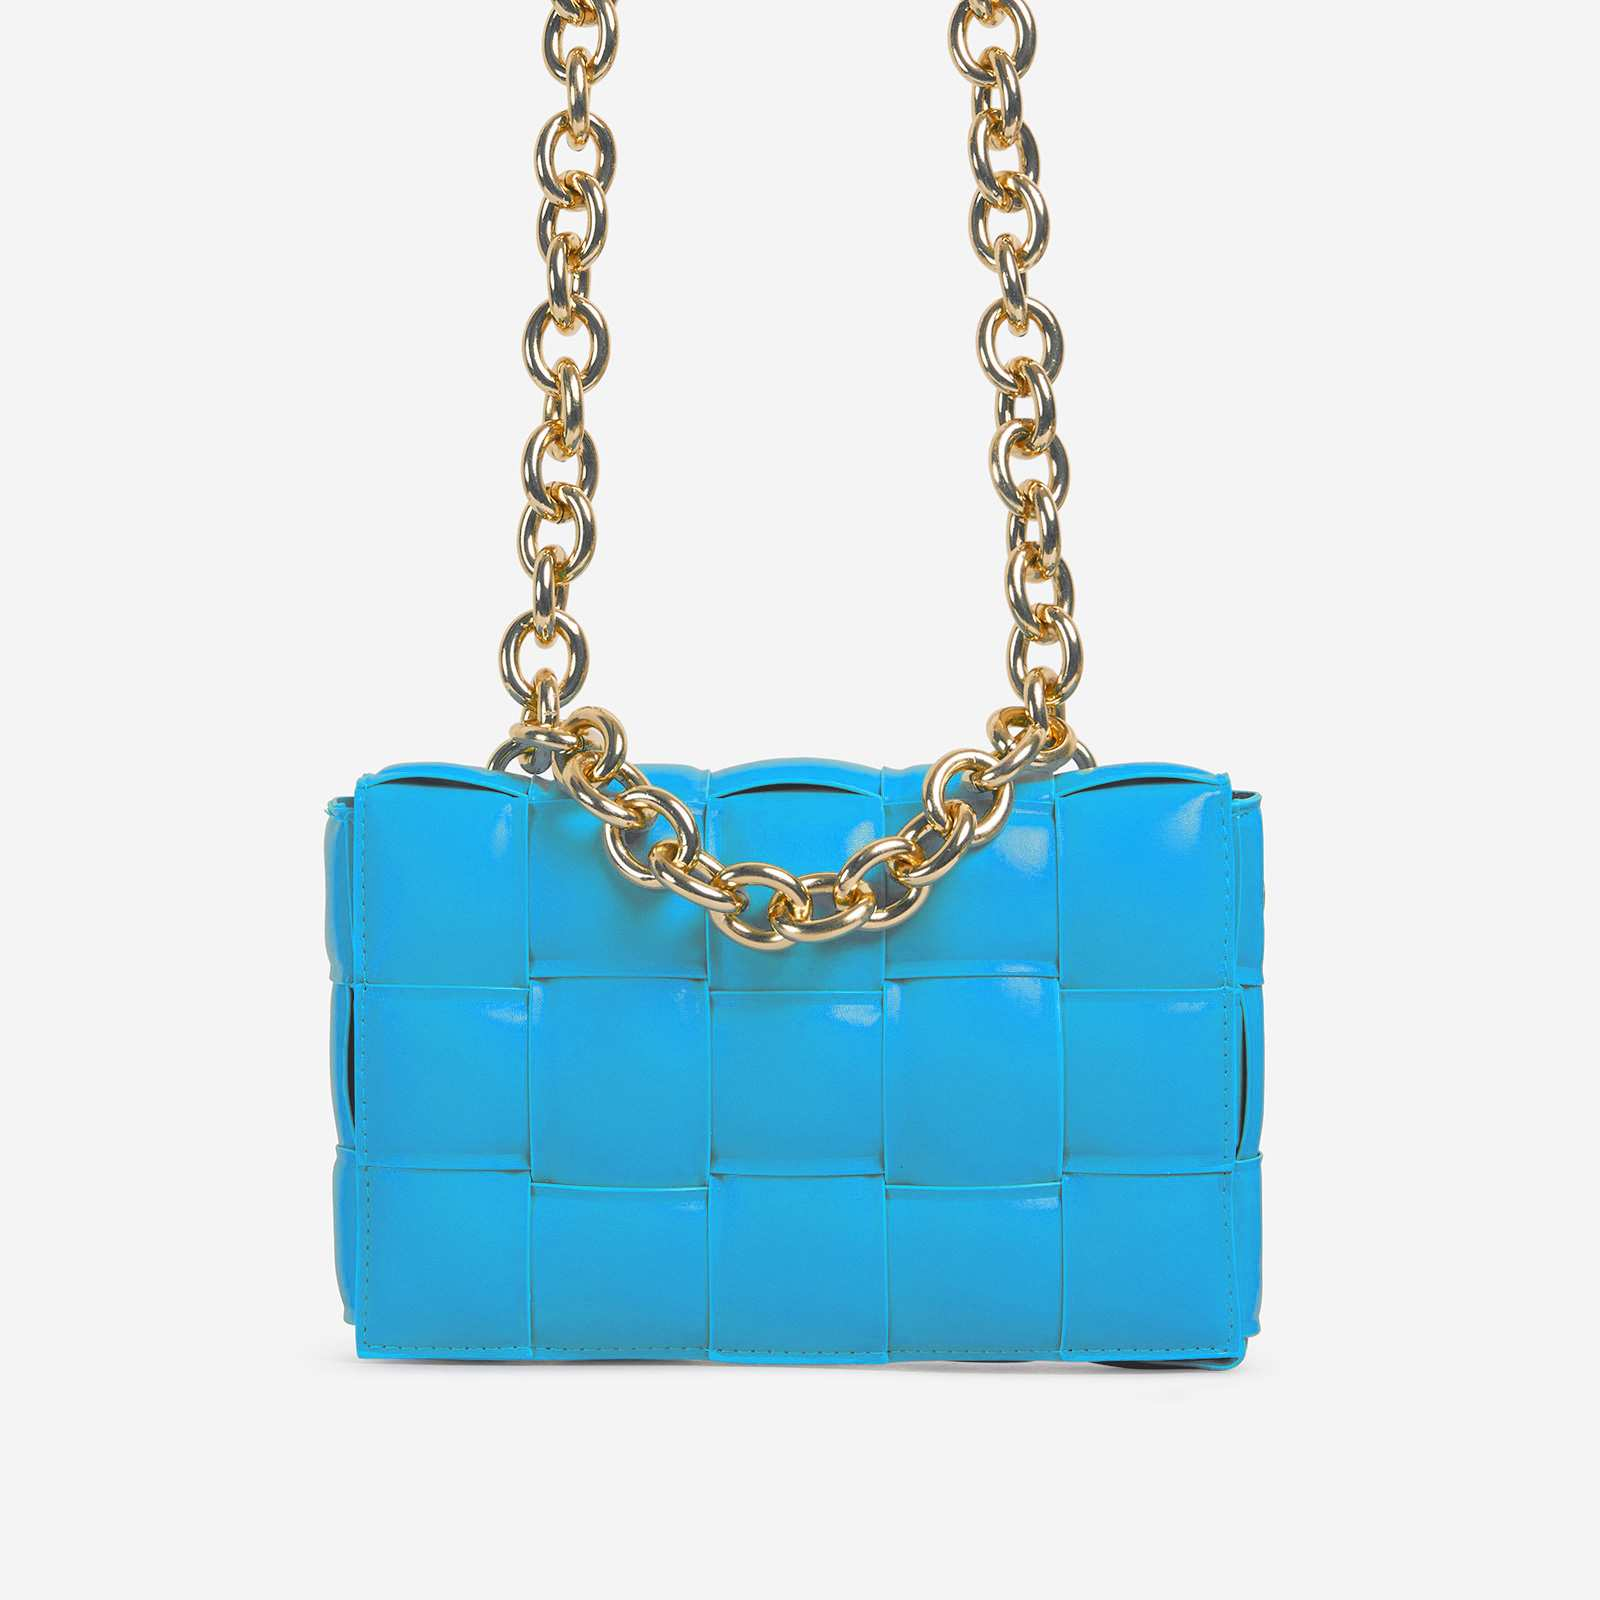 Jackson Chain Detail Quilted Shoulder Bag In Blue Faux Leather